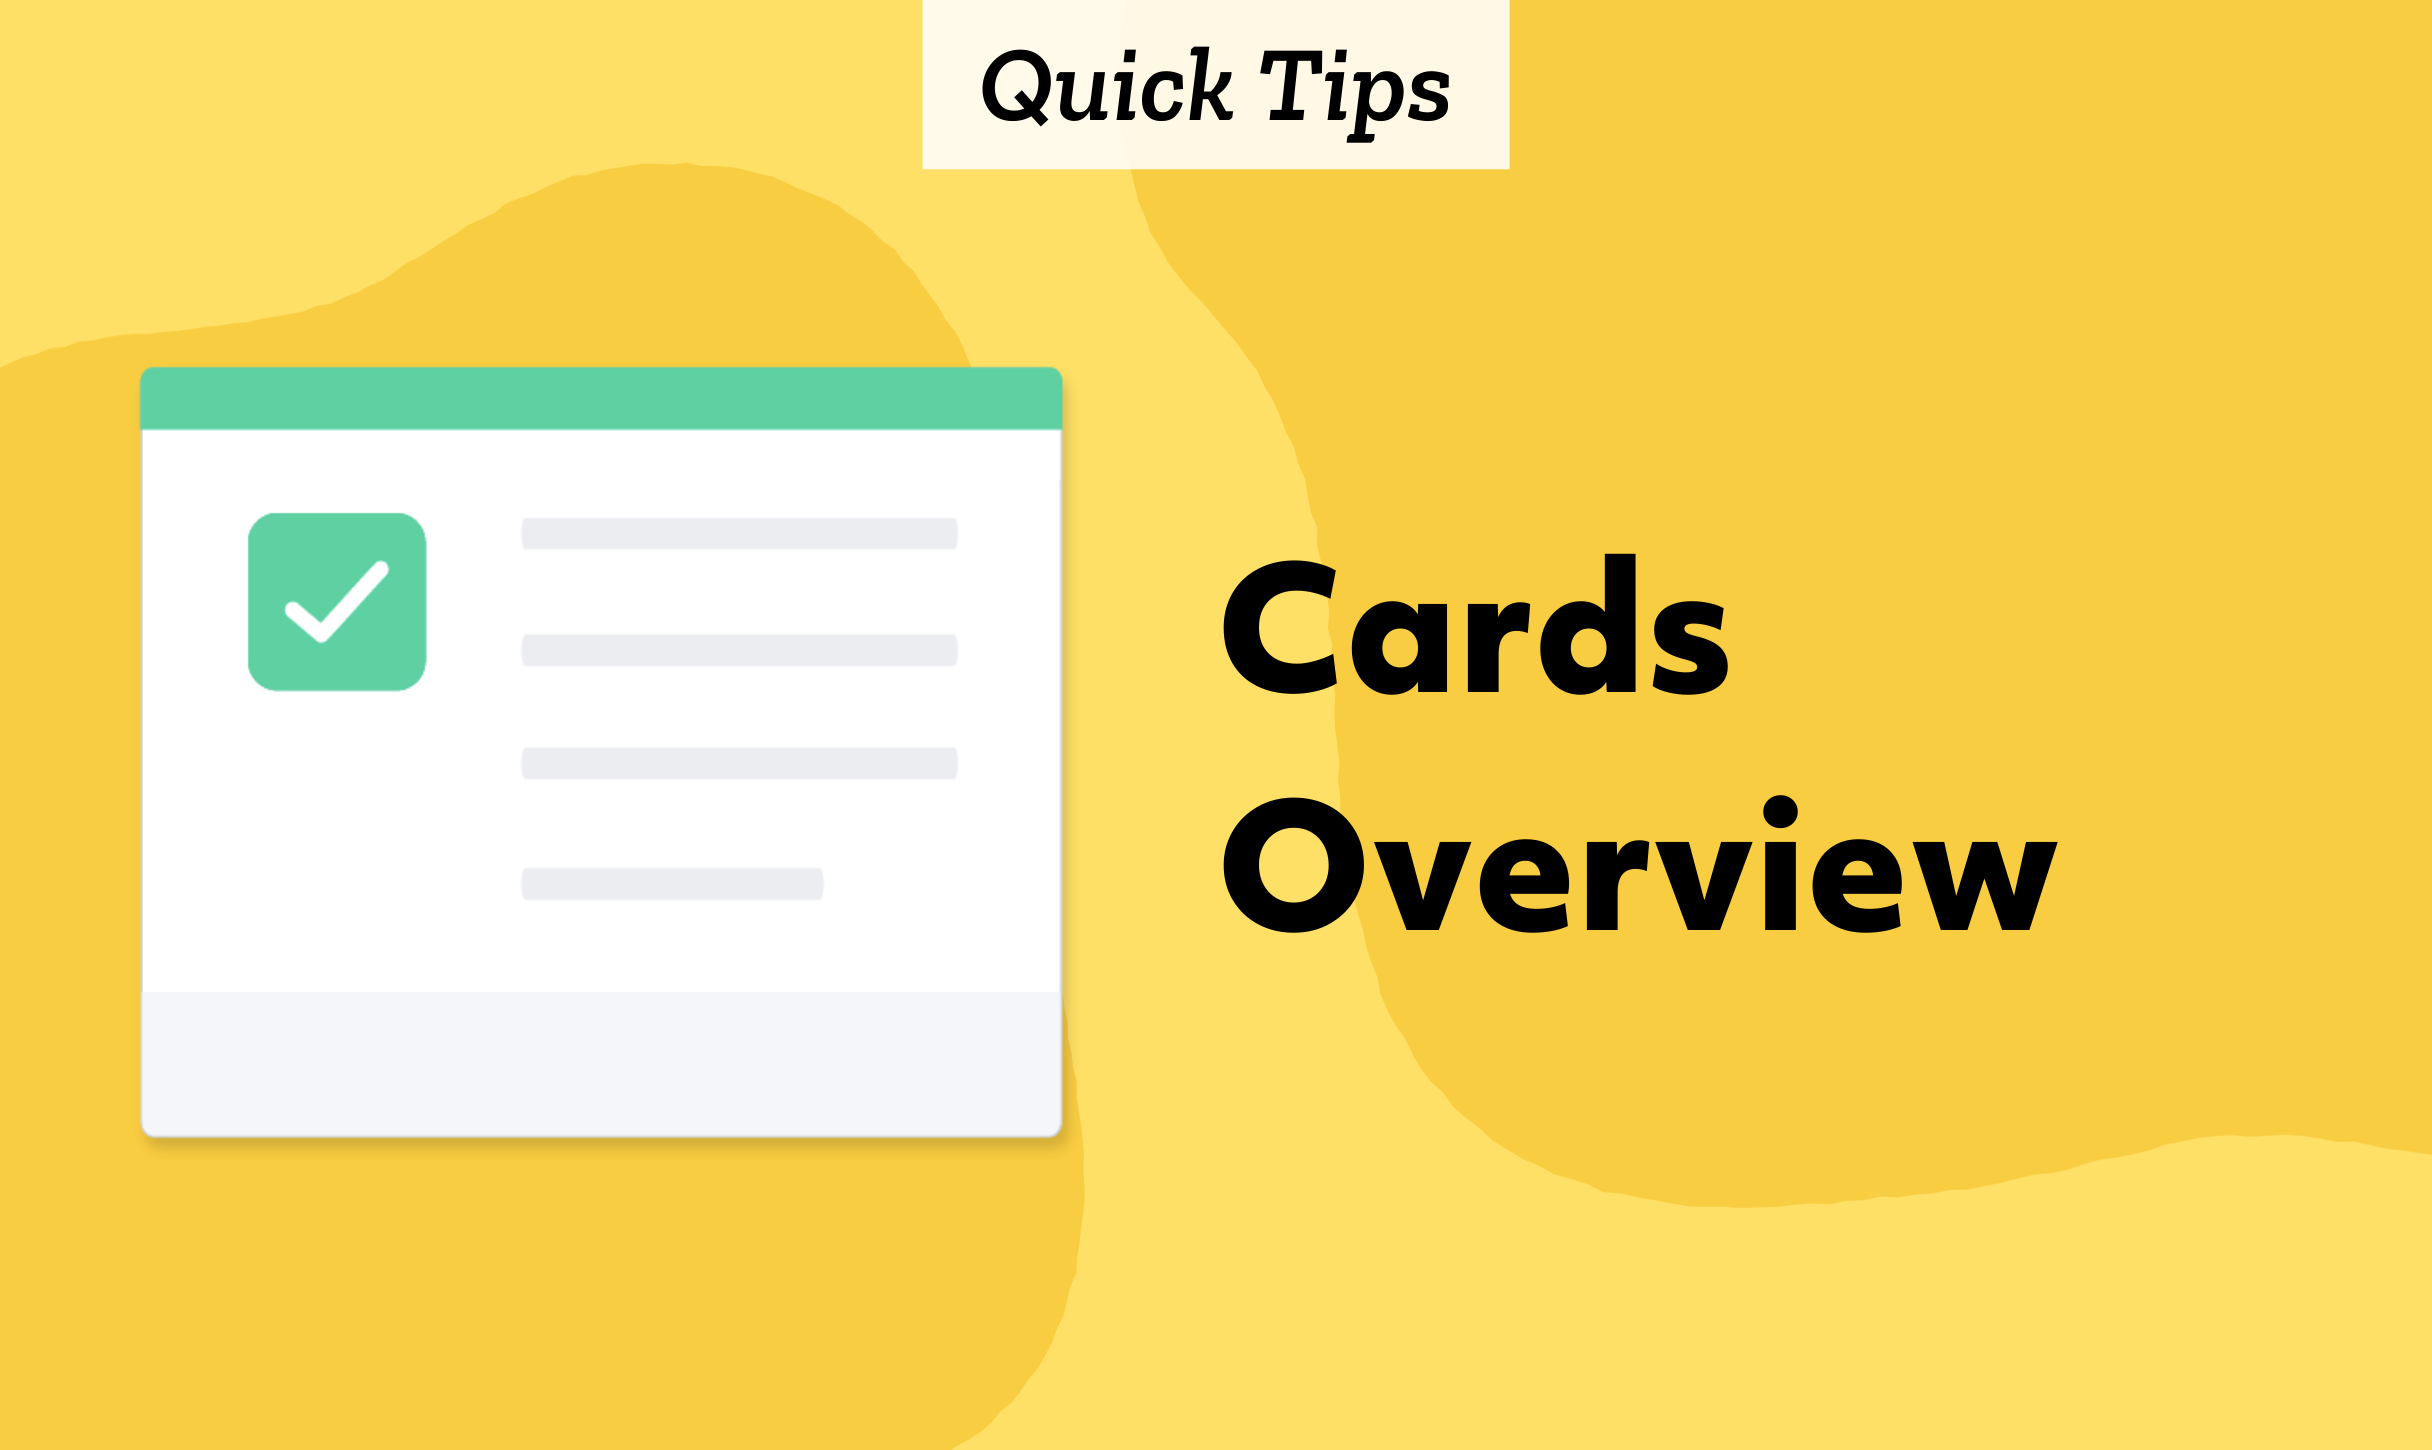 Quick Tips: Cards Overview